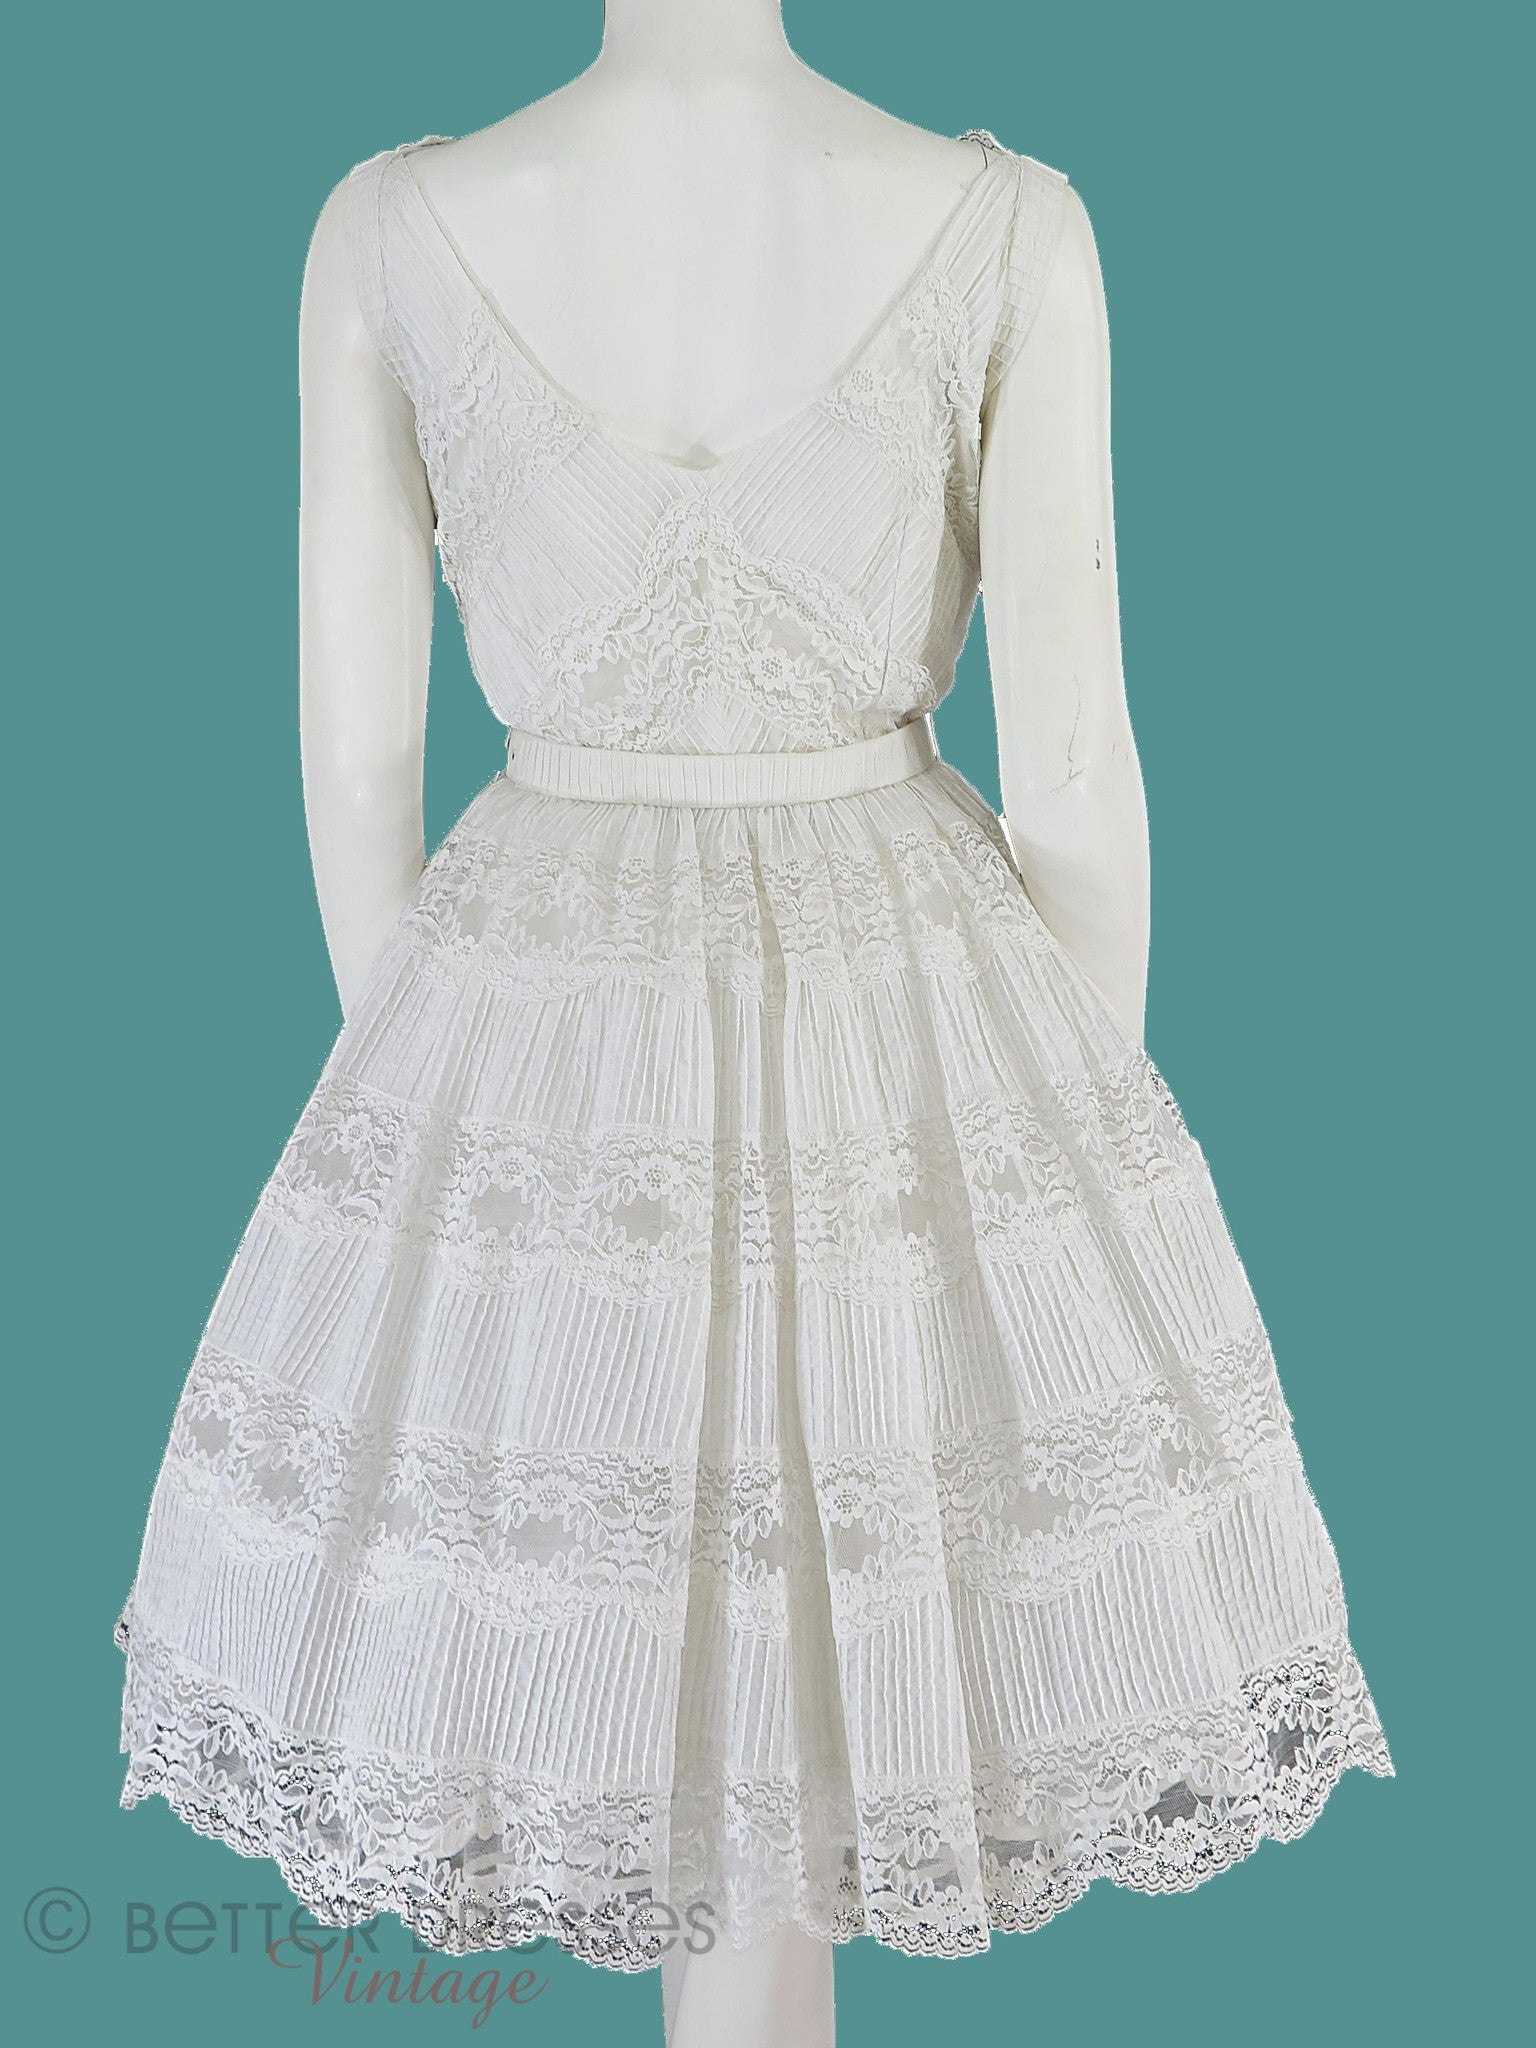 50s White Lace Full Skirt Party or Wedding Dress - sm – Better ...